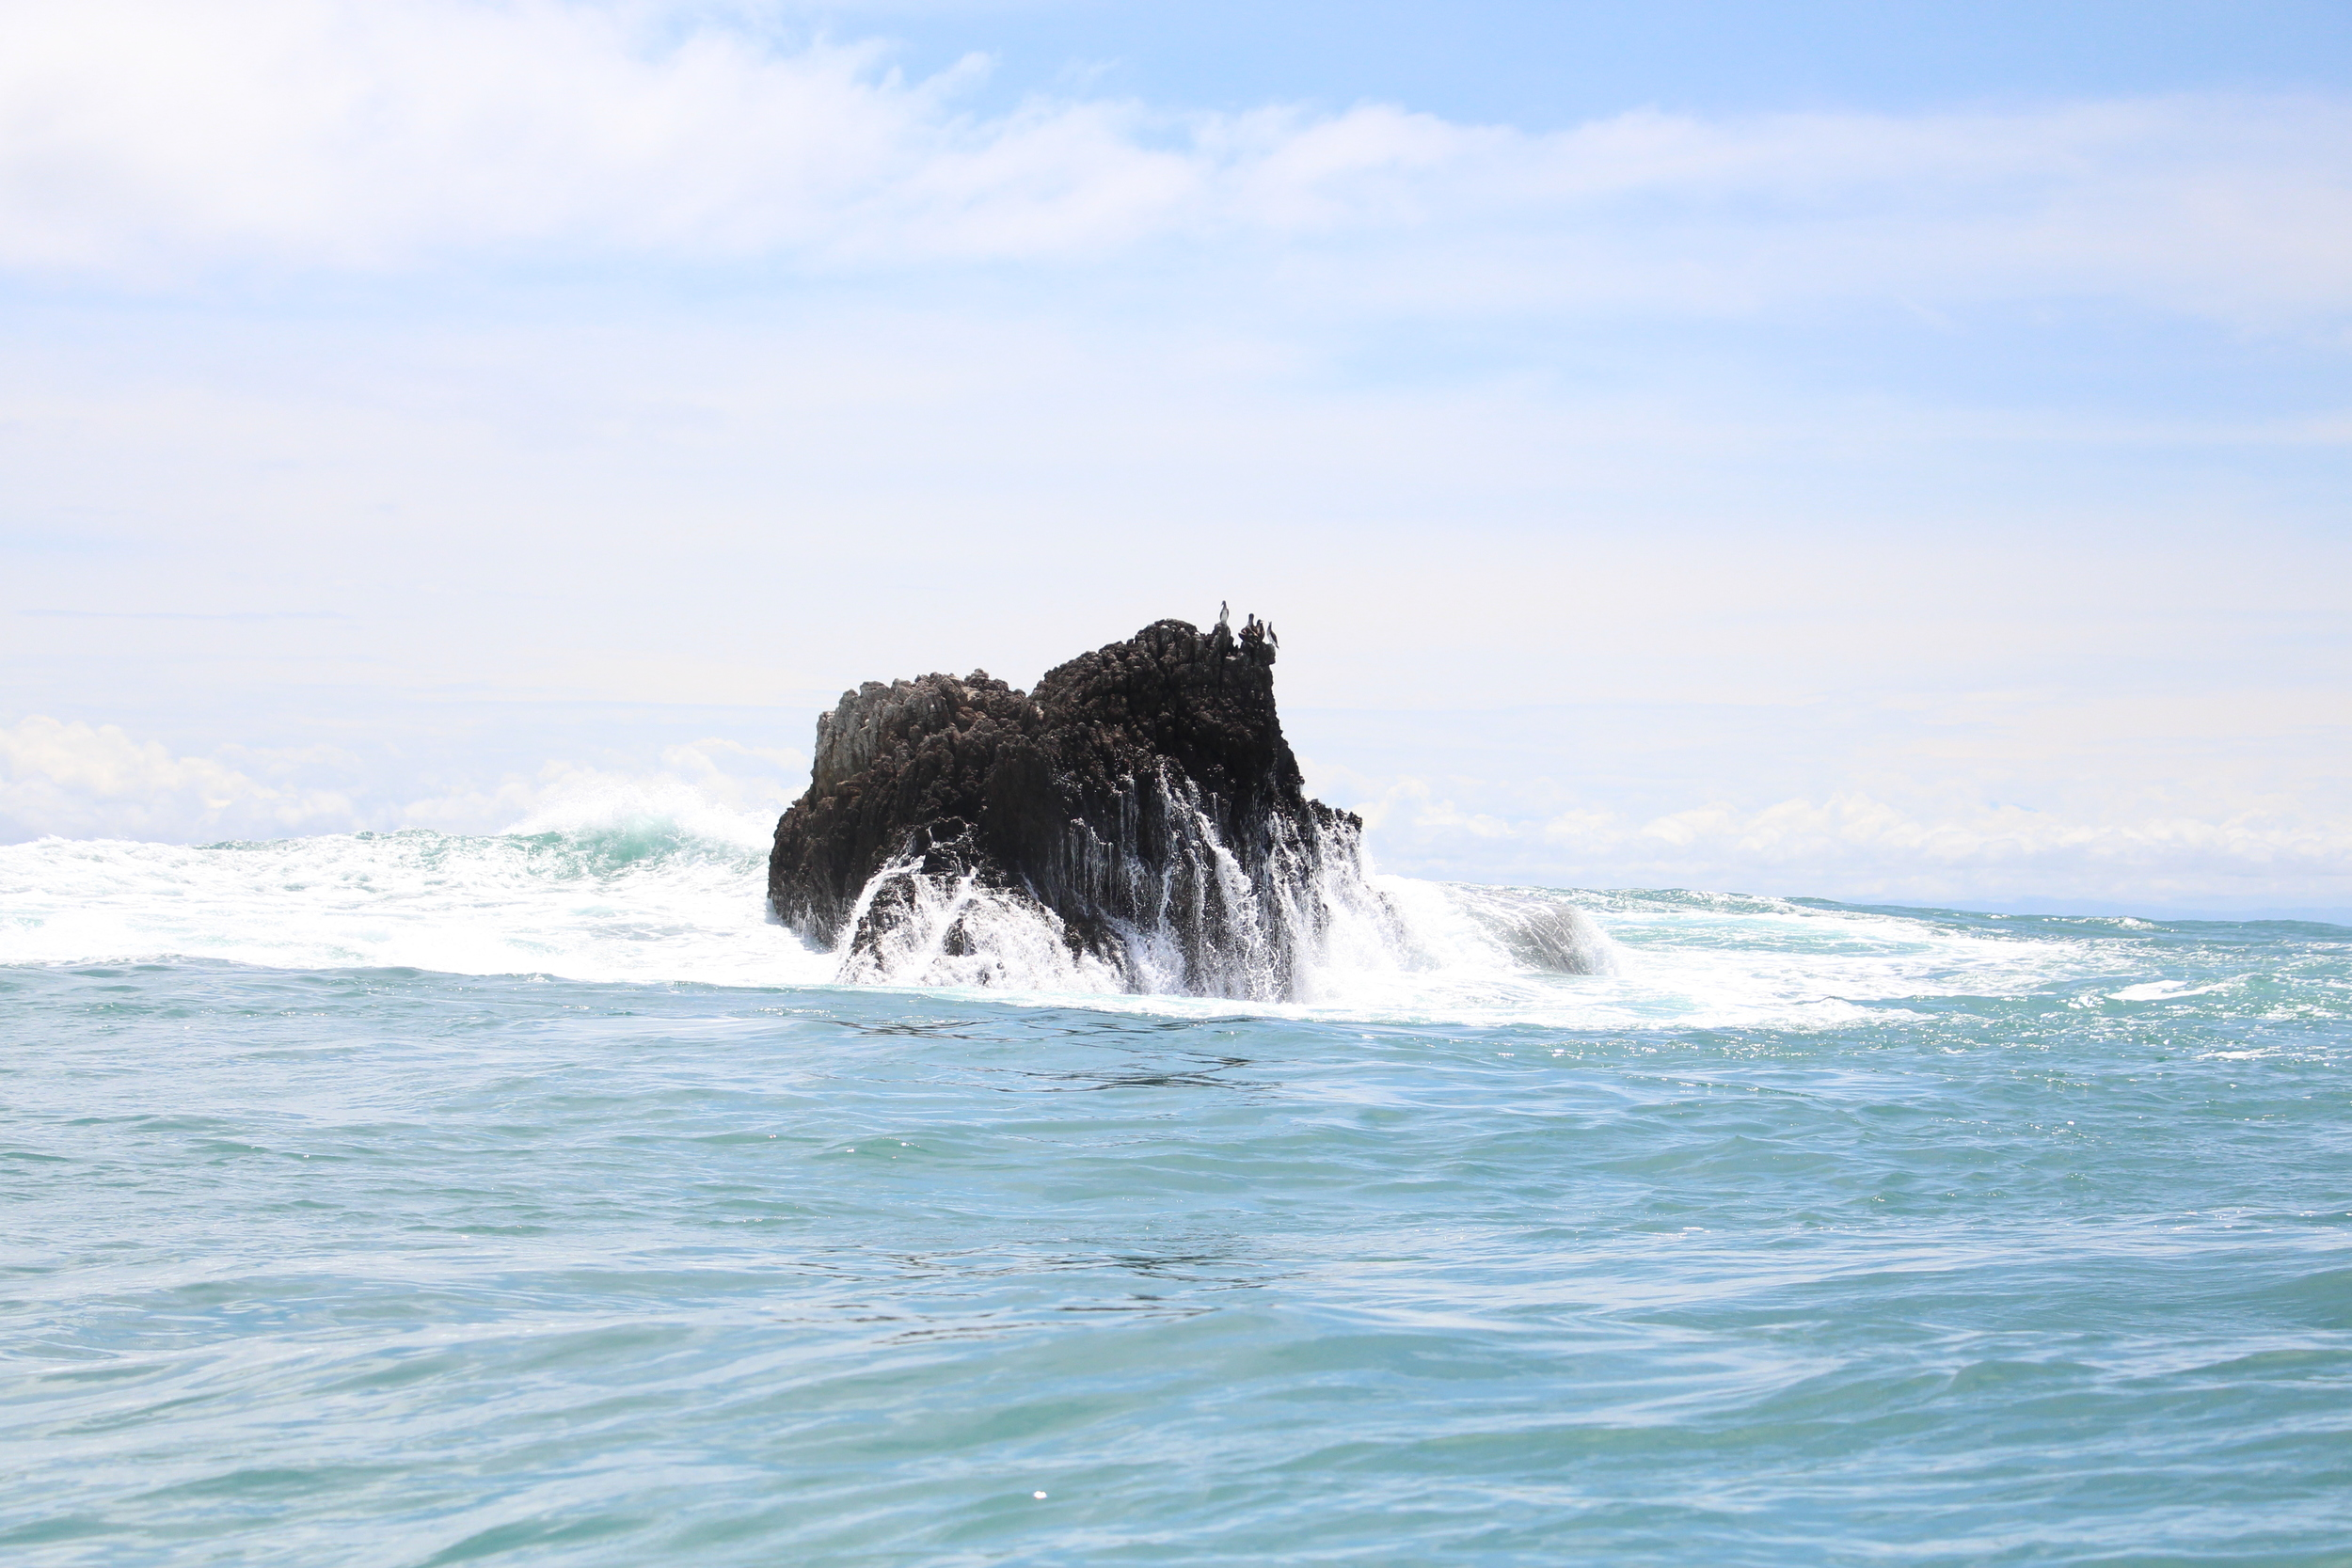 Hours were spent trolling around this rock. Enrique, our local panga guide would get no farther than ten feet away from the structure to let us cast into it.